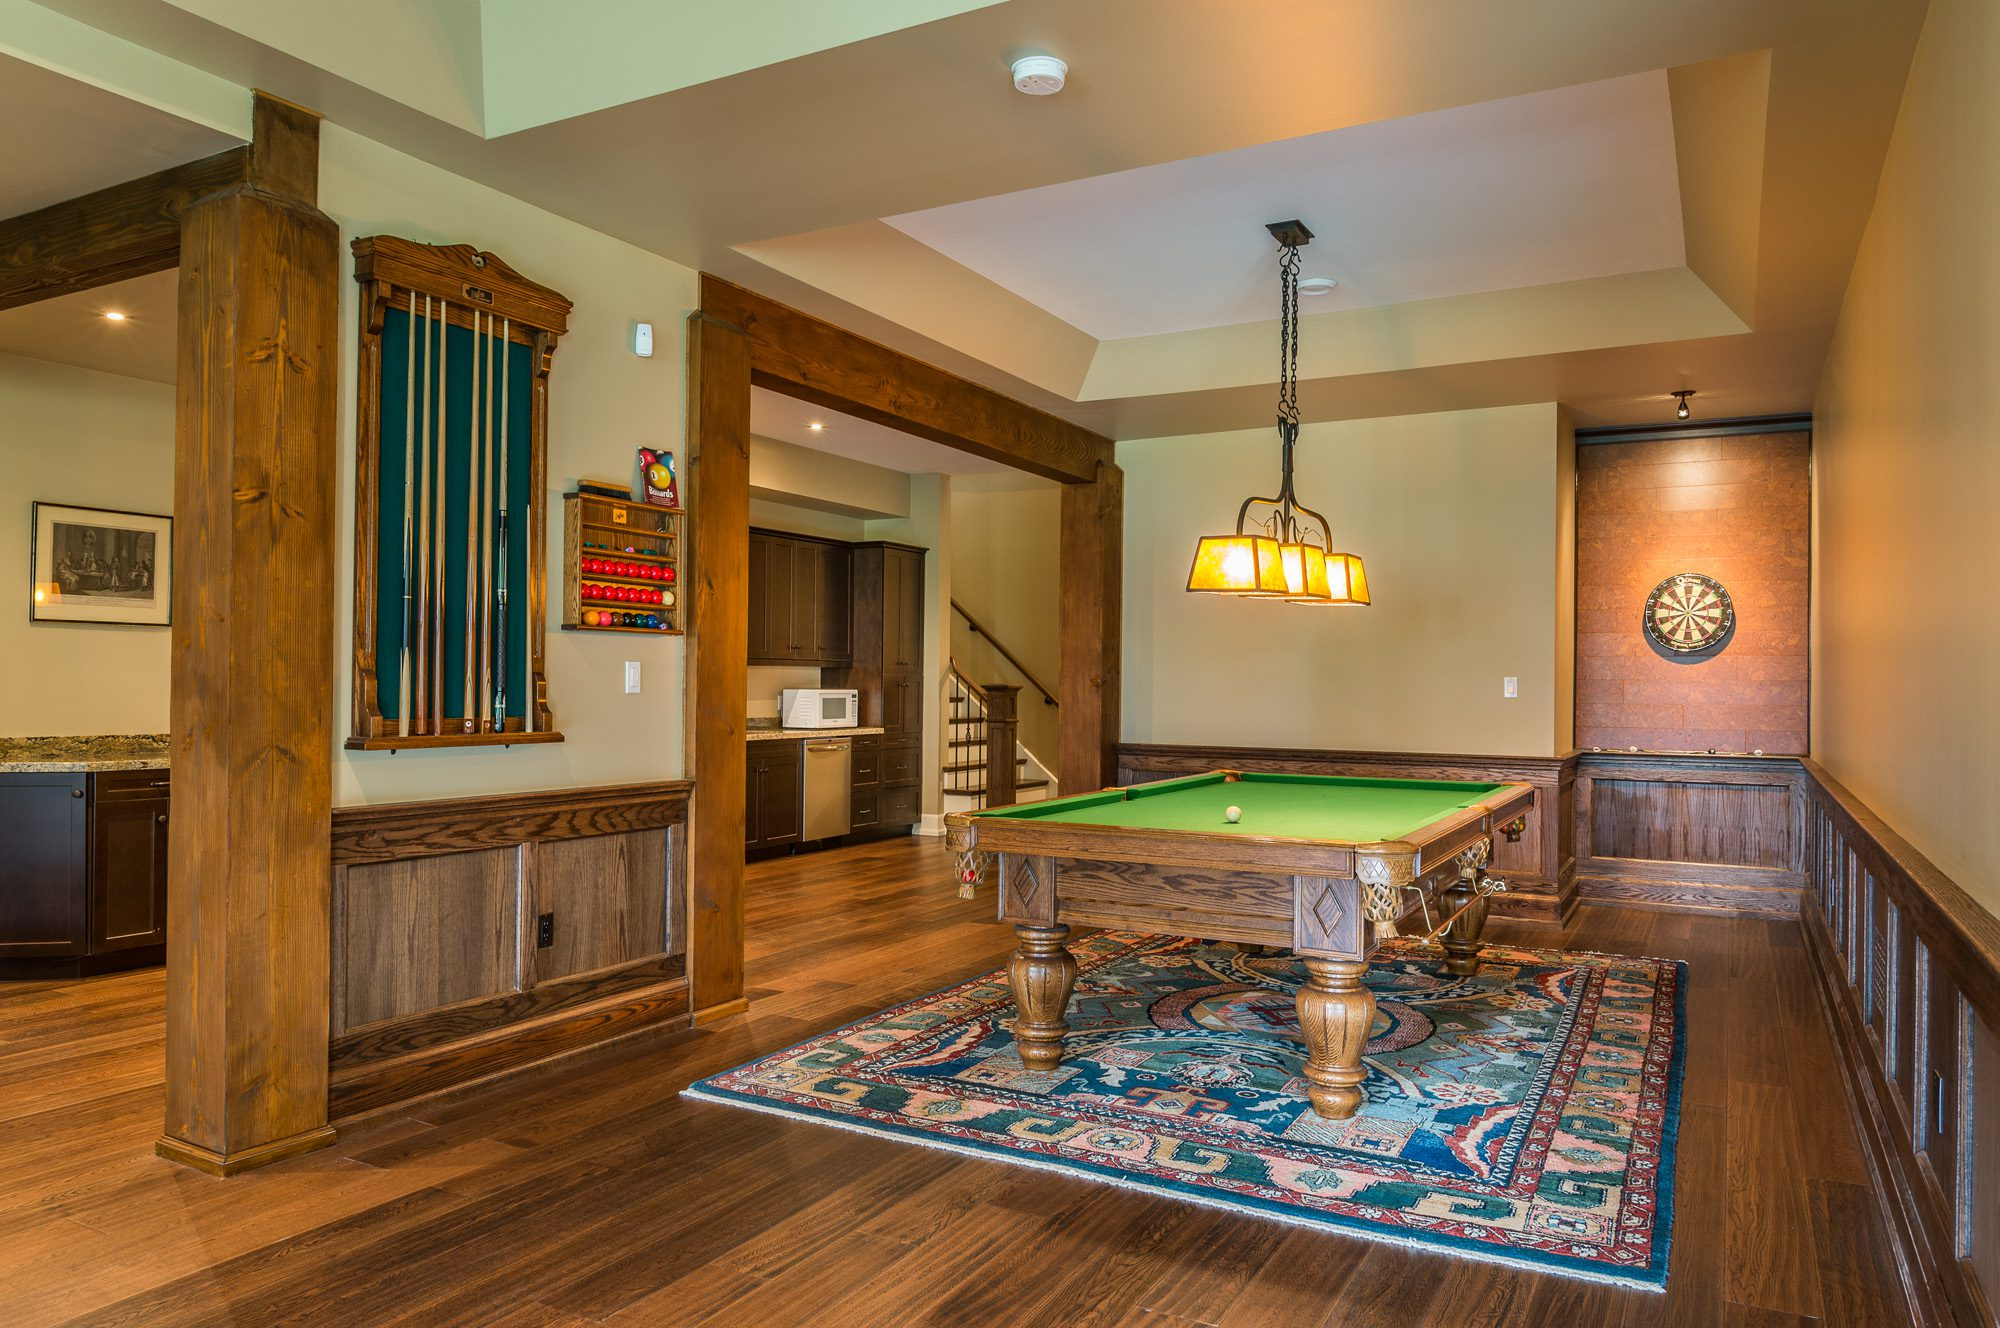 Normerica Timber Frame, Interior, Country House, Games Room, Pool Table